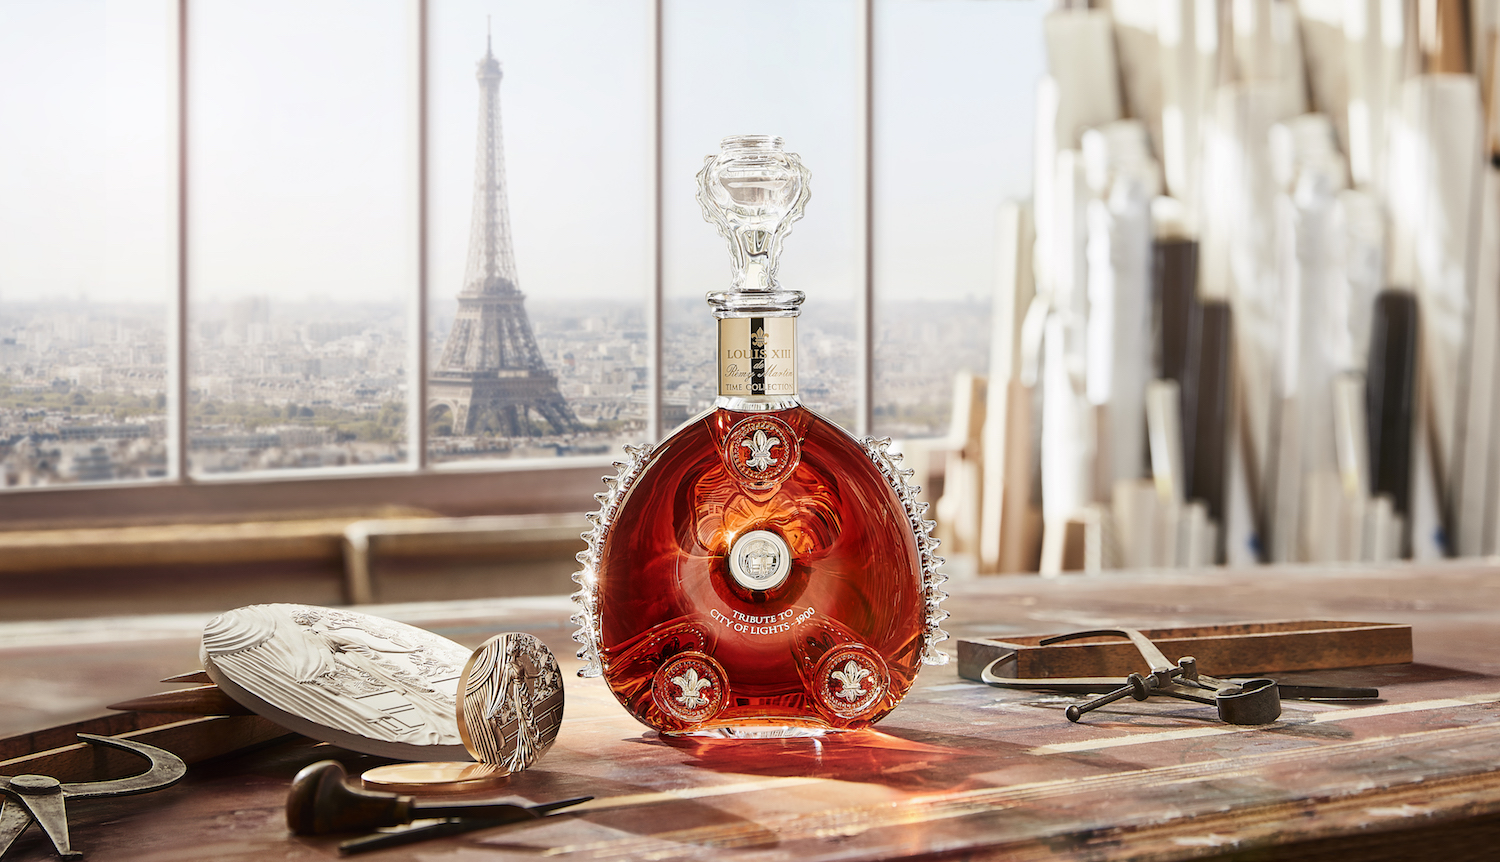 Louis XIII taps into the allure of Paris' past for its new limited edition expression